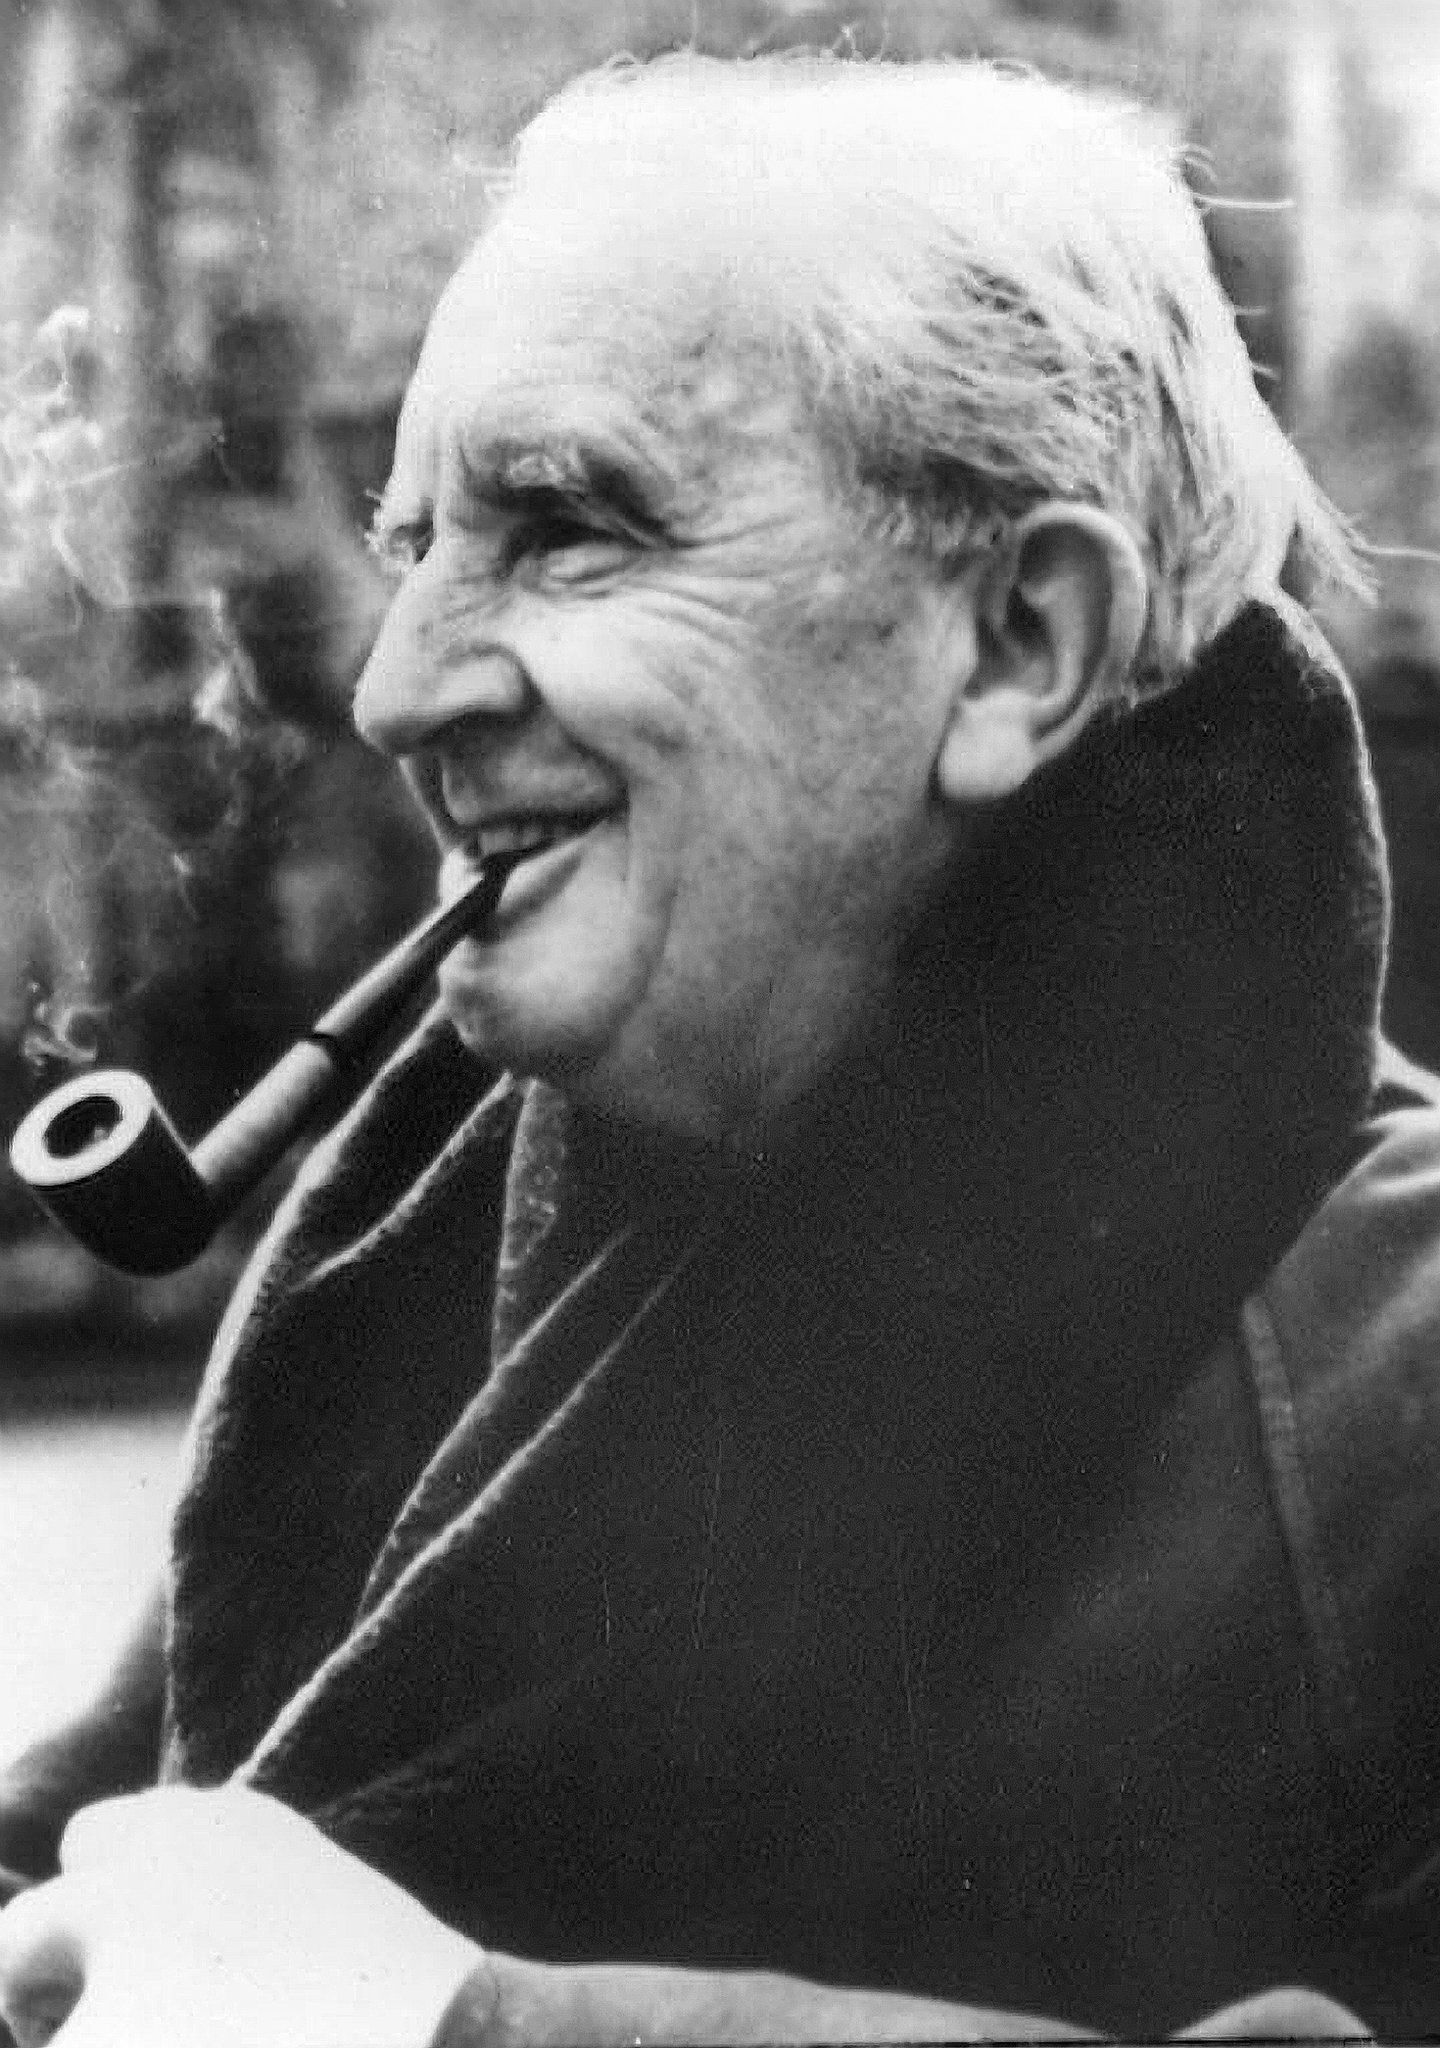 picture of J. R. R. Tolkien smoking a pipe